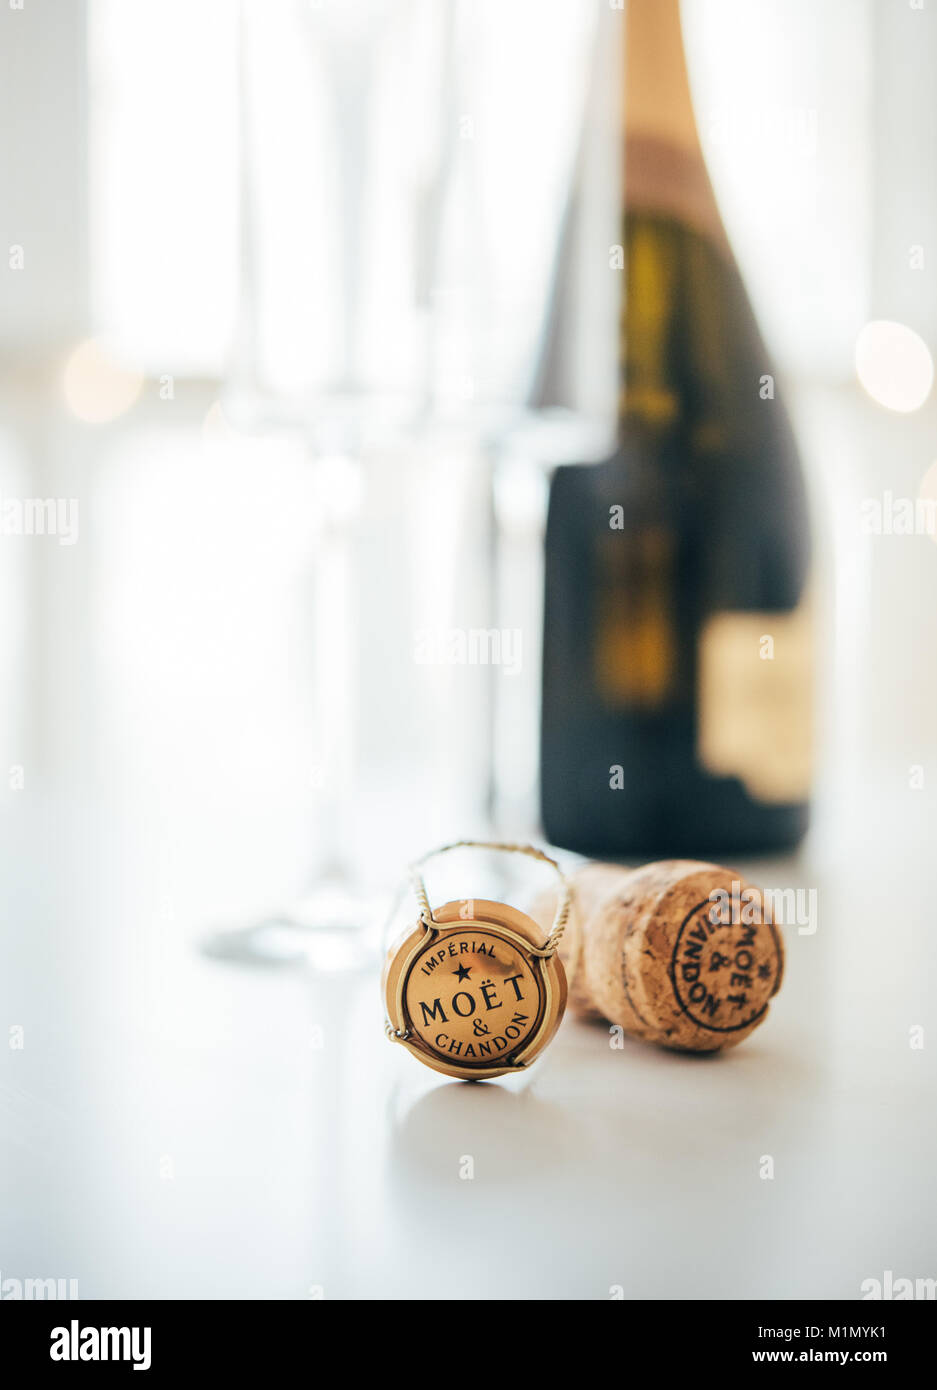 ODESSA, UKRAINE - January 30 2018: Moet & Chandon Champagne cork - Stock Image